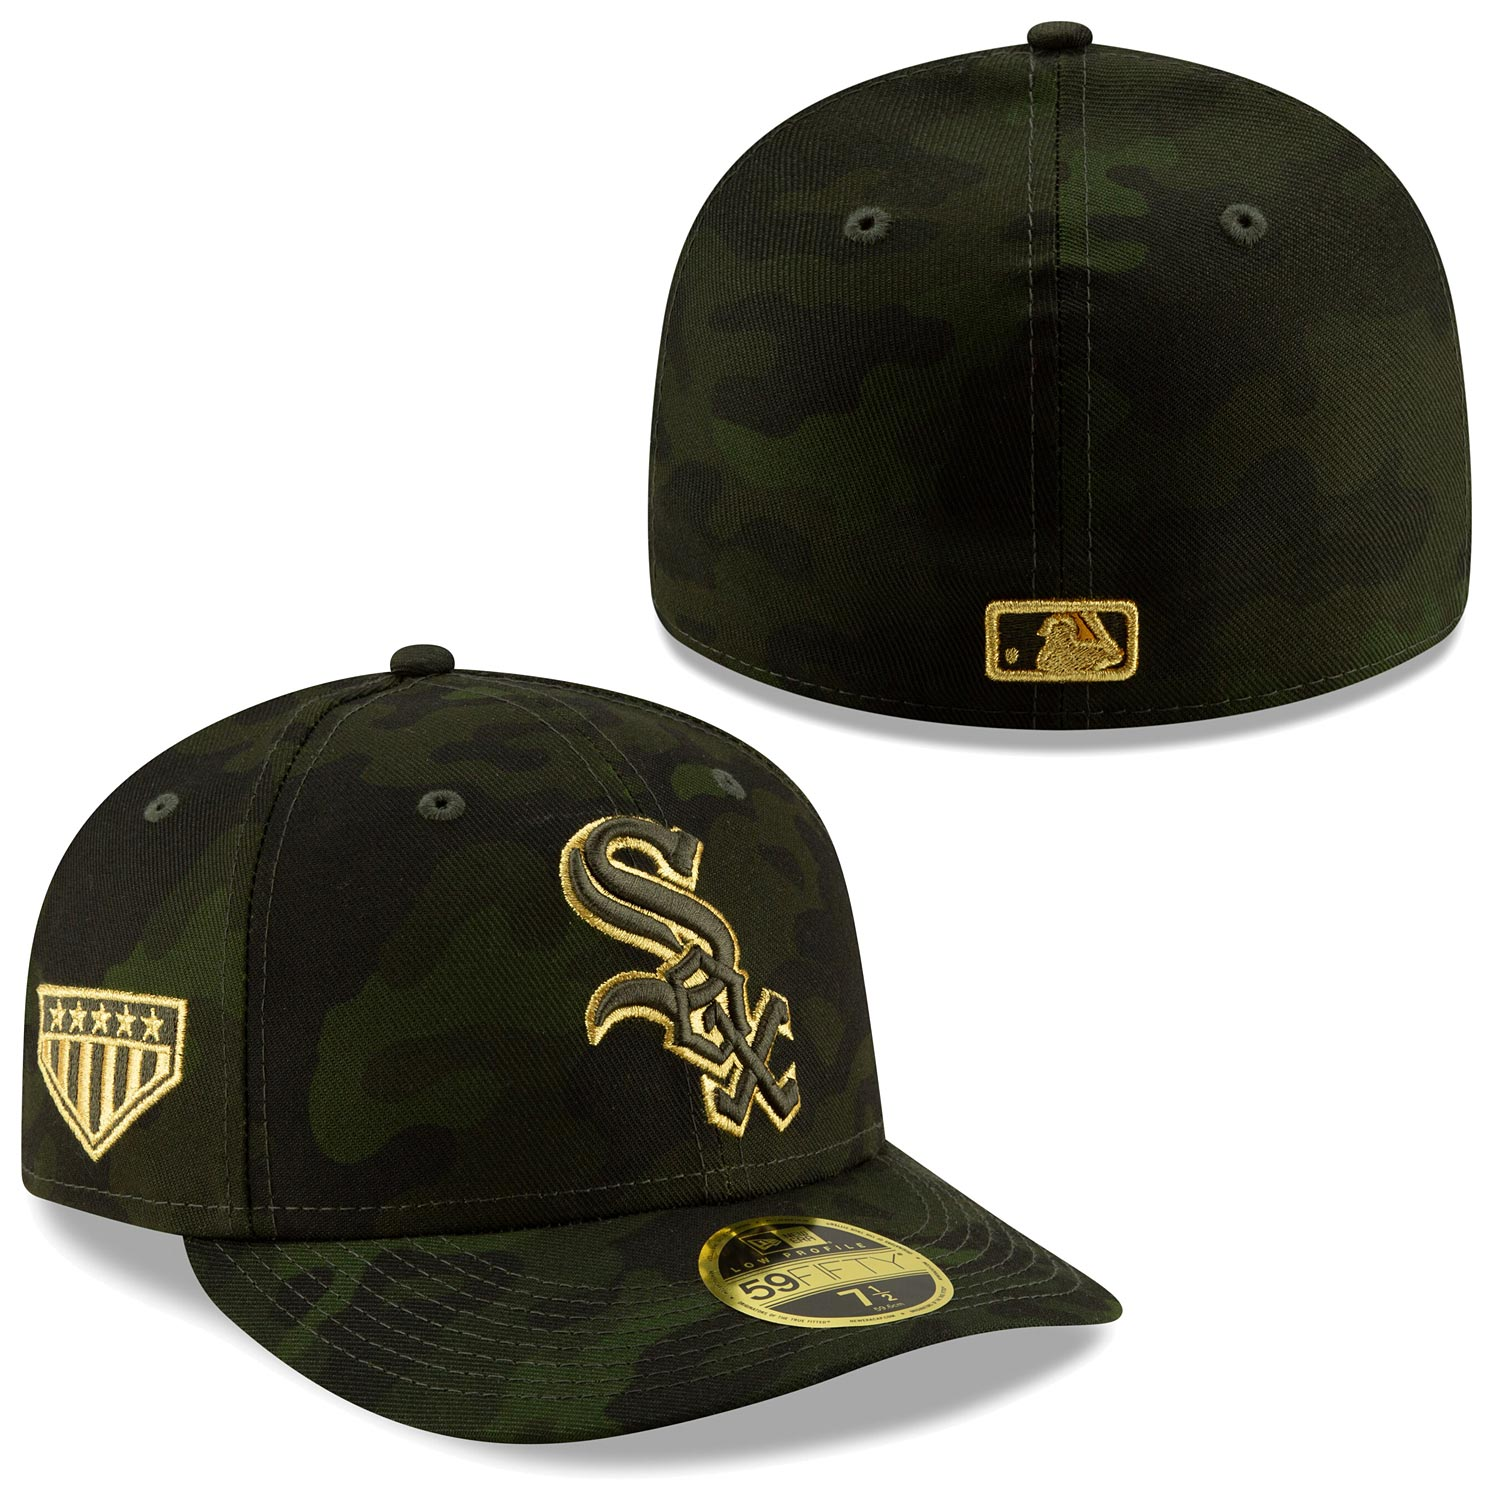 Chicago White Sox 2019 Armed Forces Day Low Profile 59 50 Fitted